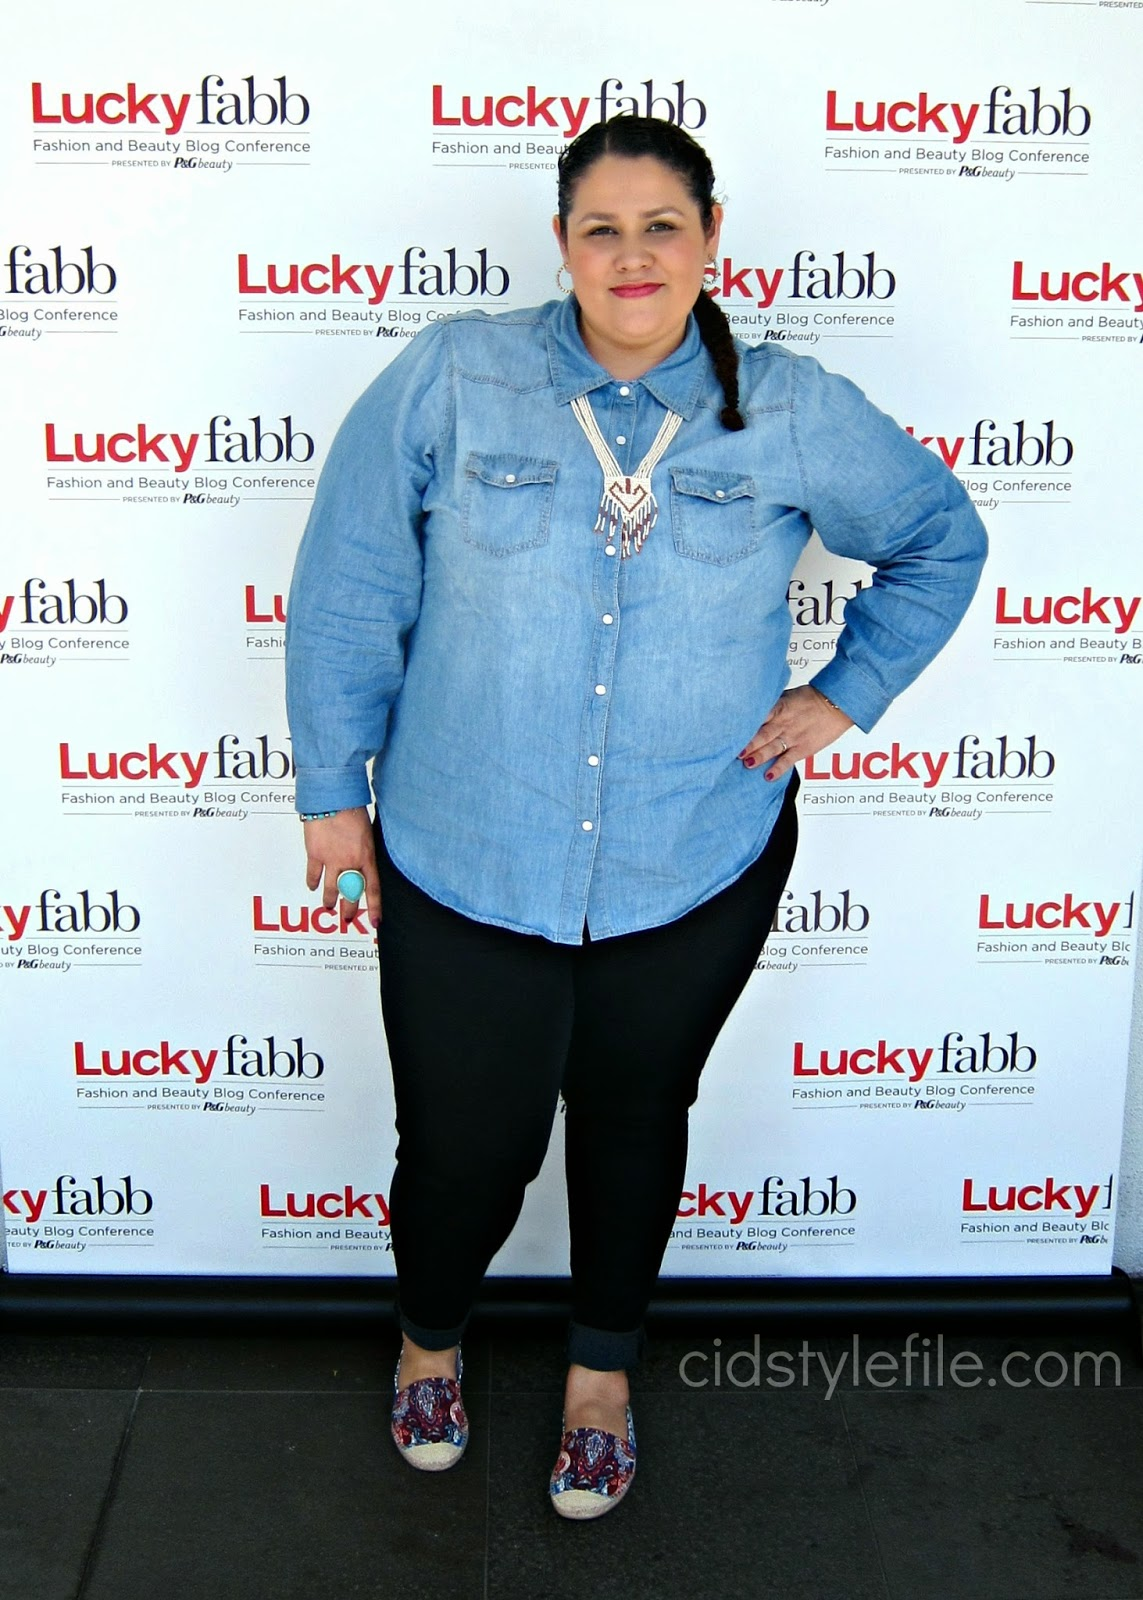 #ootd, #luckyfabb, got it at ross, paulina rubio collection, just fab, nine west, levis jeggings, latina blogger, plus size fashion